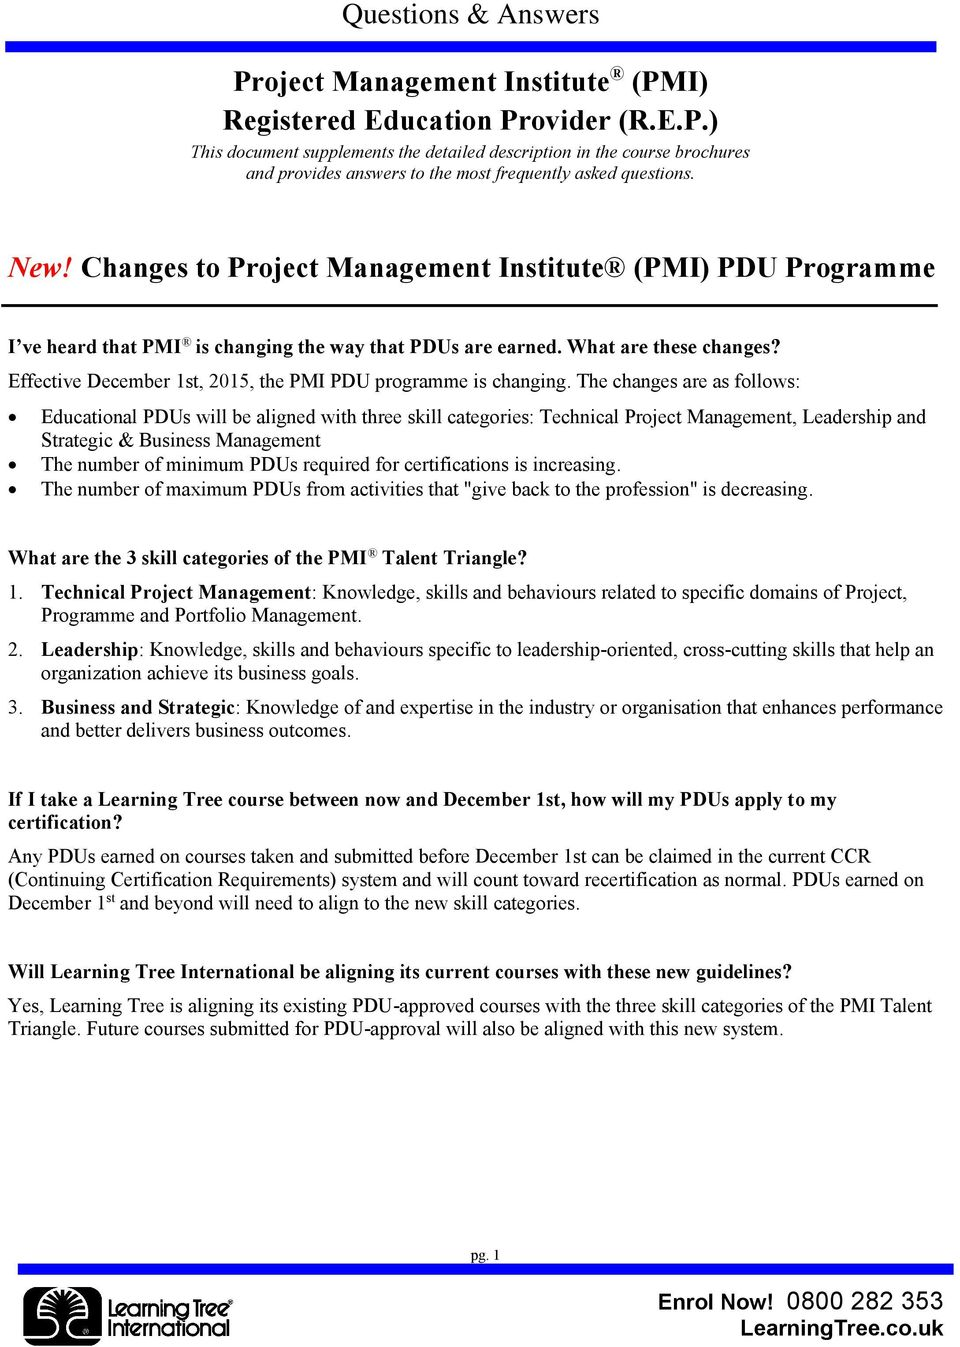 Questions Answers Project Management Institute Pmi Registered